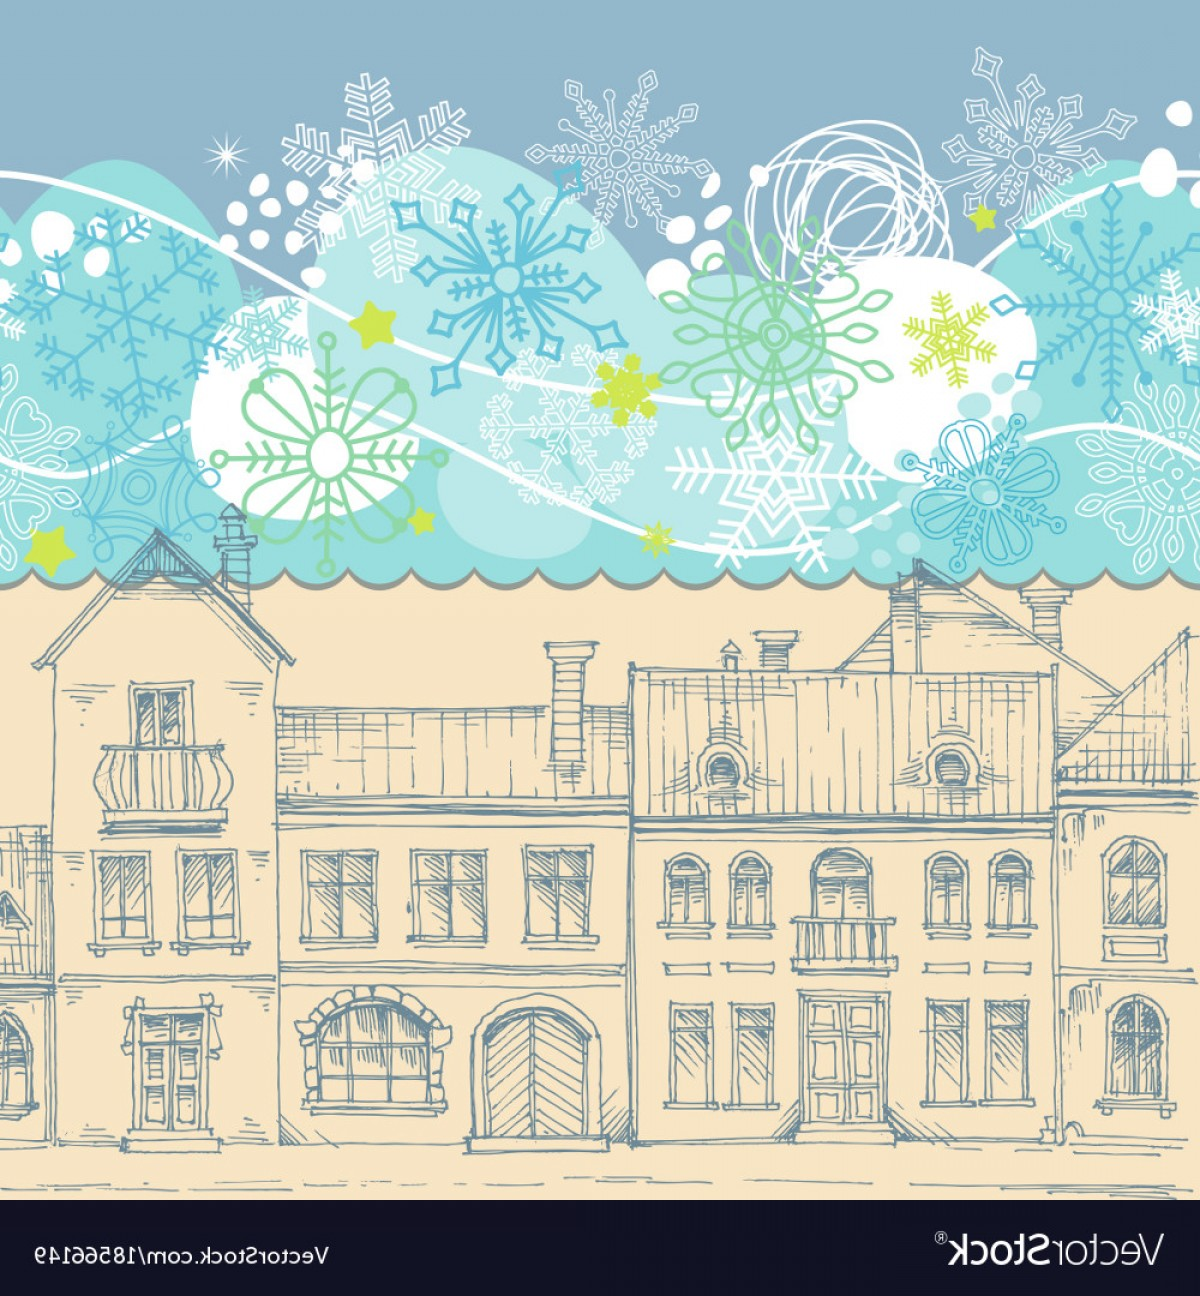 Snowflake Border Vector Art: Christmas Card Blue Sky Snowflakes Border Vector